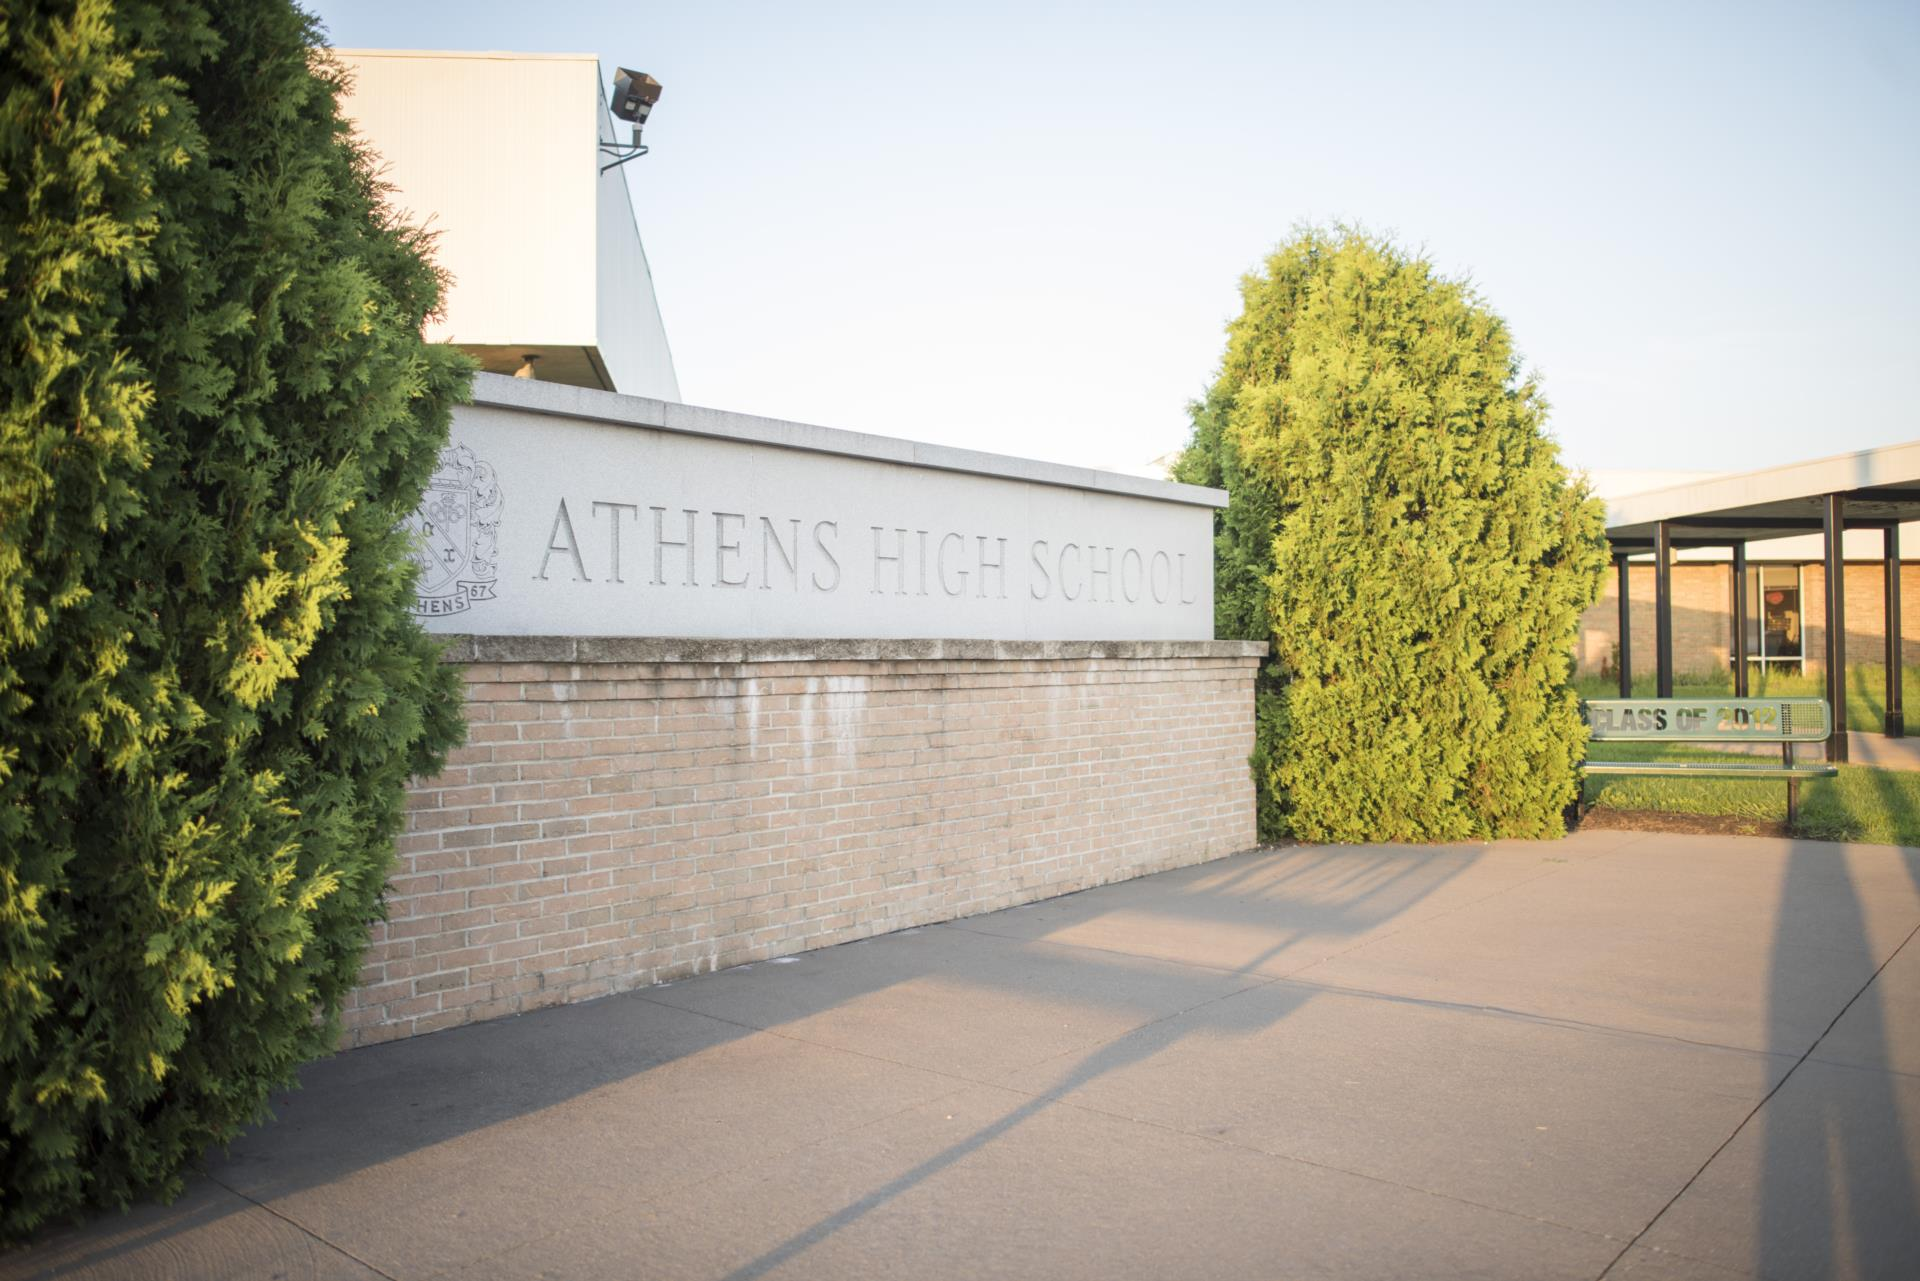 Photo of Athens High School